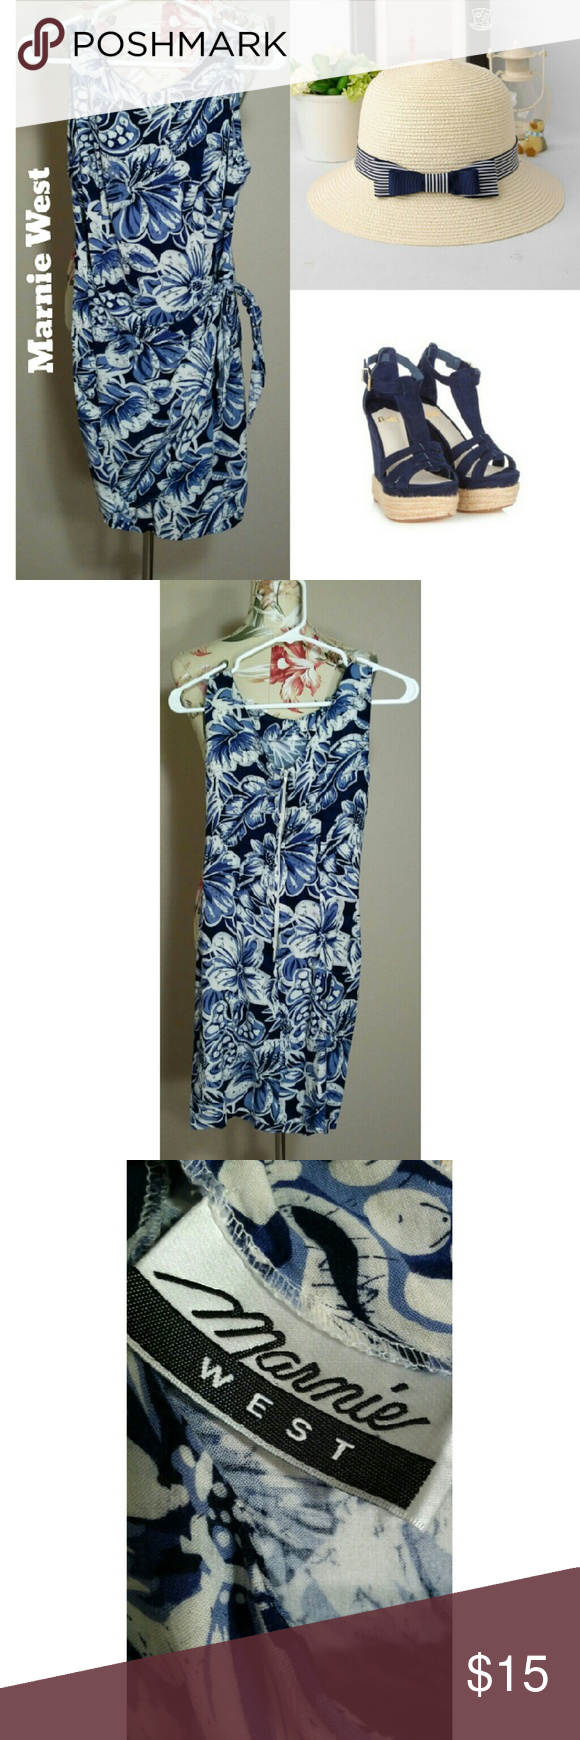 Vintage Tropical Dress A super soft blue and white floral print wrap style dress with short sleeves. Marnie West brand cotton blend. Pre-loved but in great condition with no visible flaws.  Flat Measurements: Bust 14 inches Waist 13 inches Length 33 inches Vintage Dresses Midi